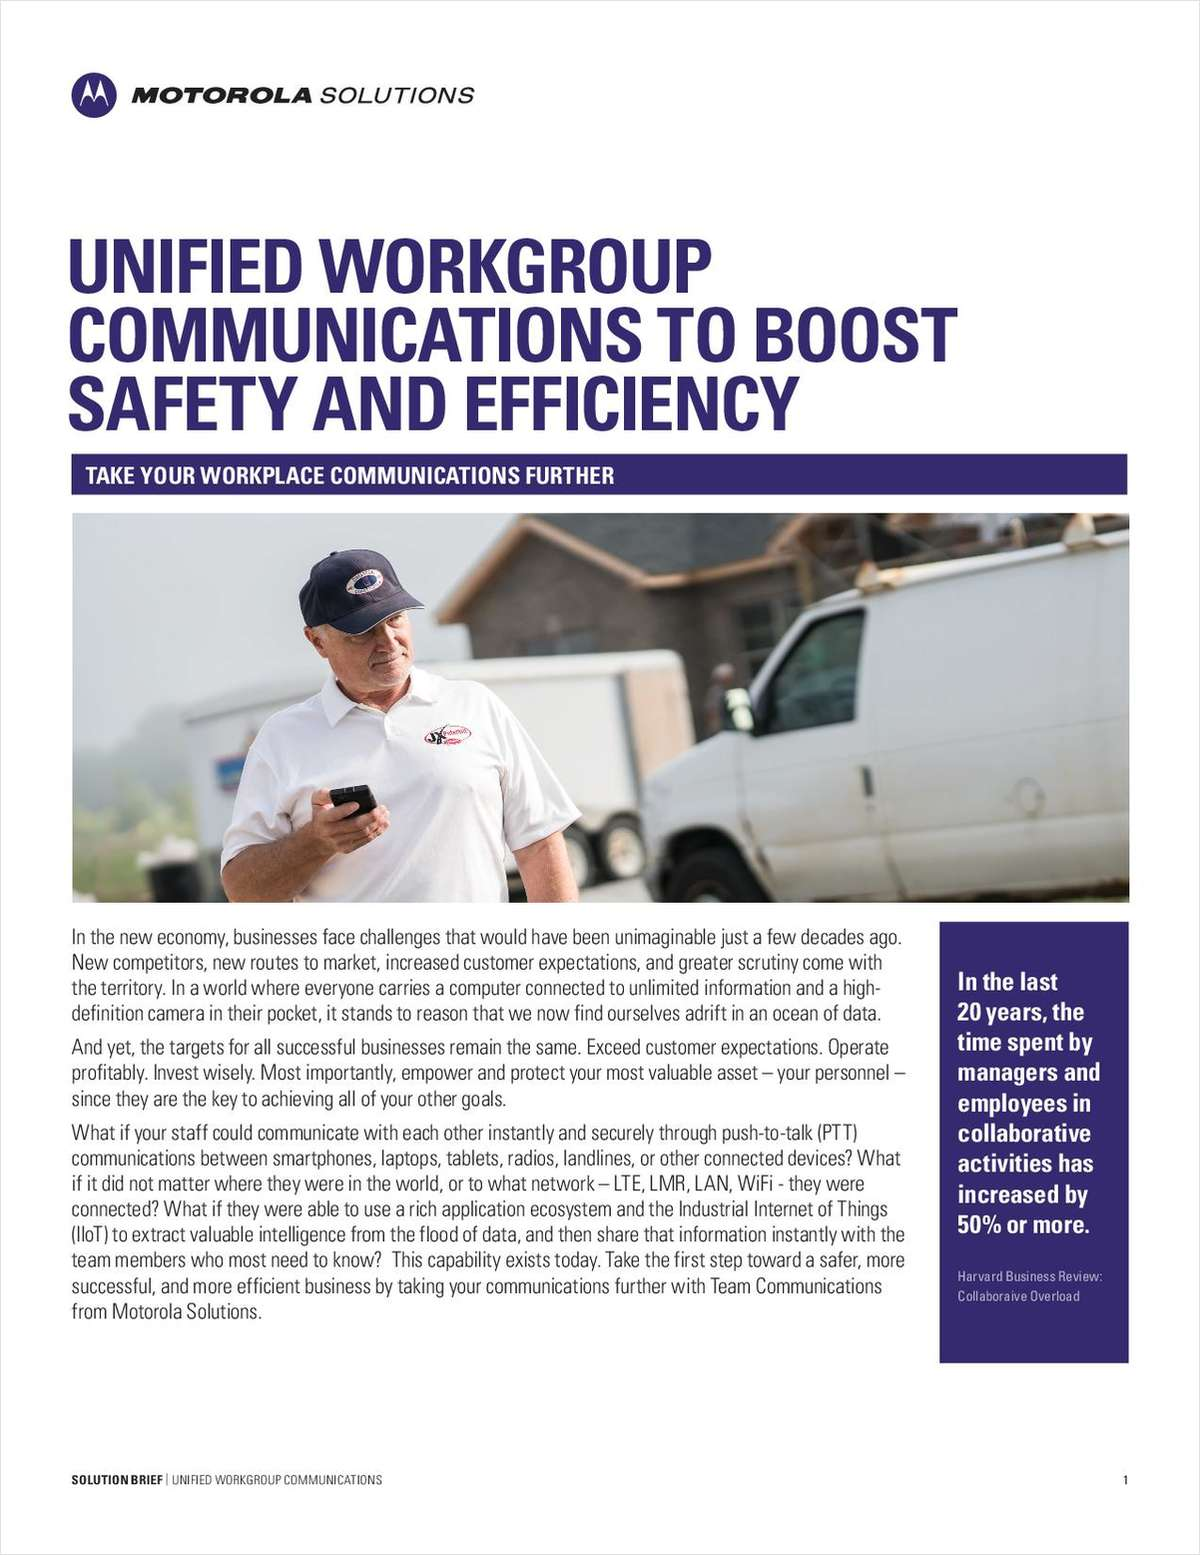 Unified Workgroup Communications to Boost Safety and Efficiency